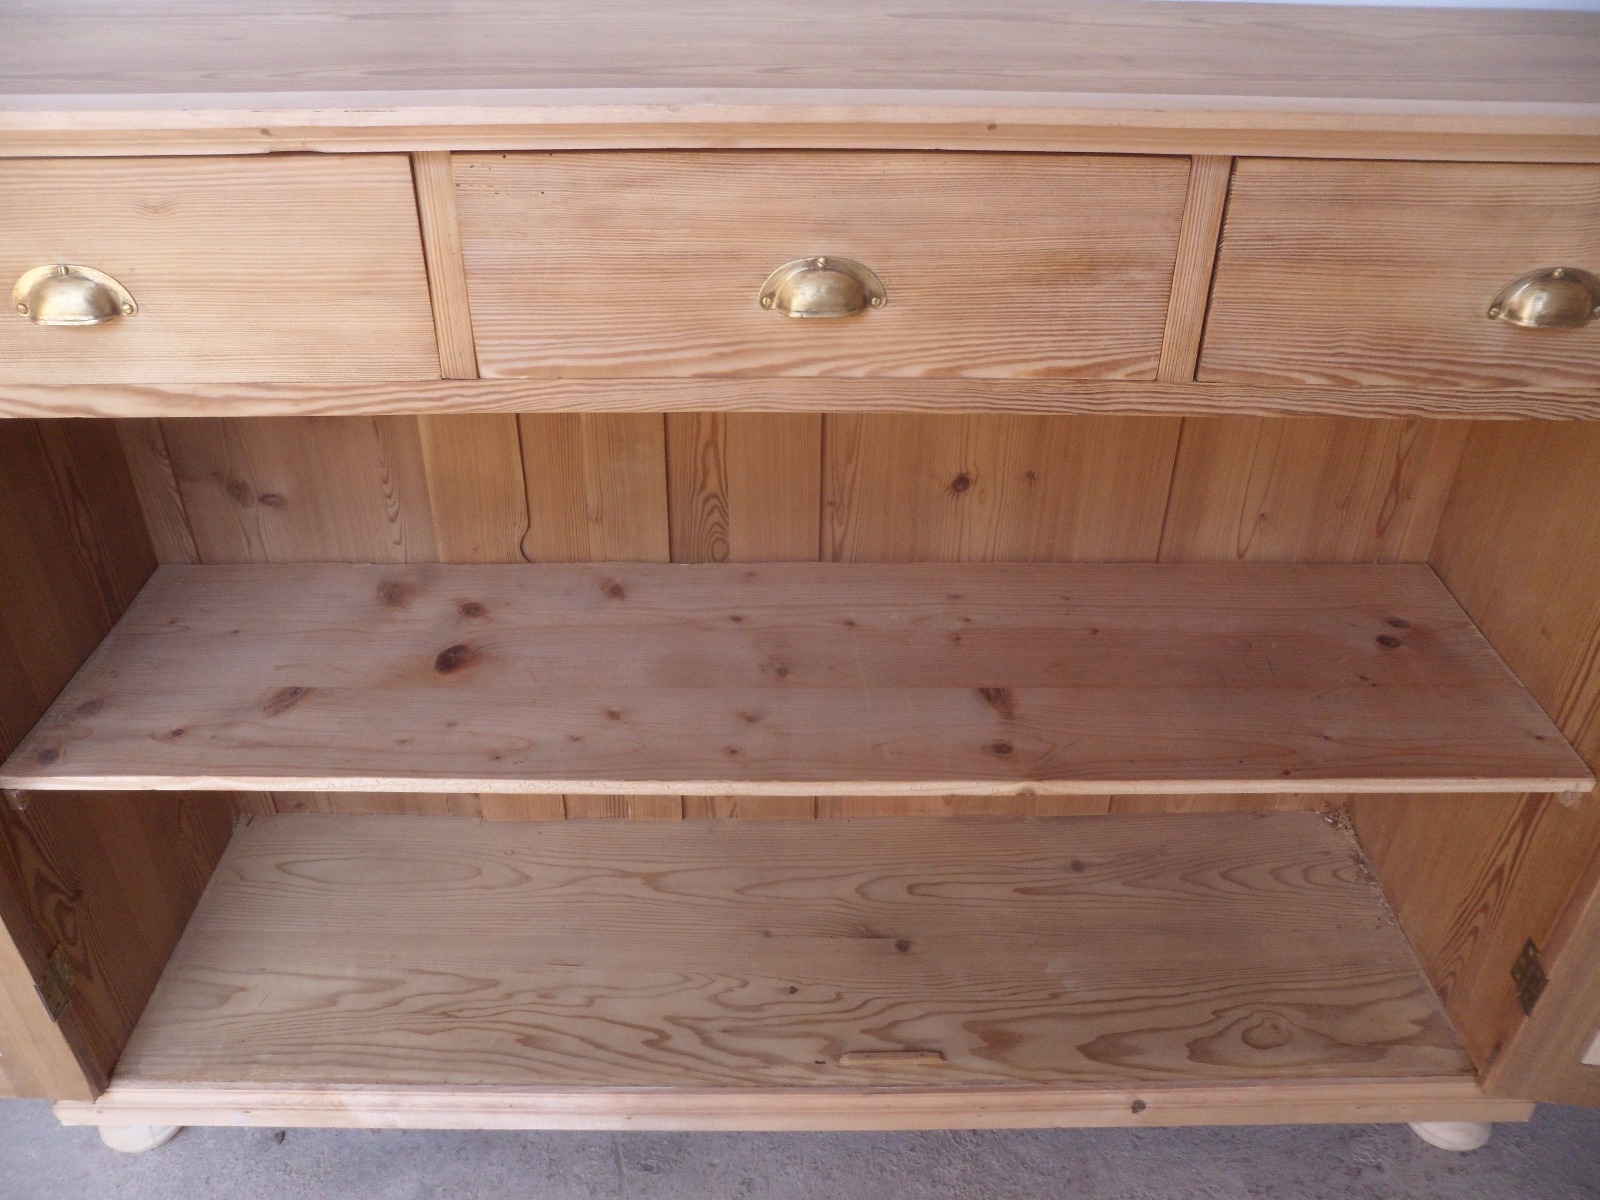 Large Narrow Old Pine 2 Door 3 Drawer Kitchen Dresser Base To Wax Regarding Most Up To Date Aged Pine 3 Drawer 2 Door Sideboards (Gallery 8 of 20)